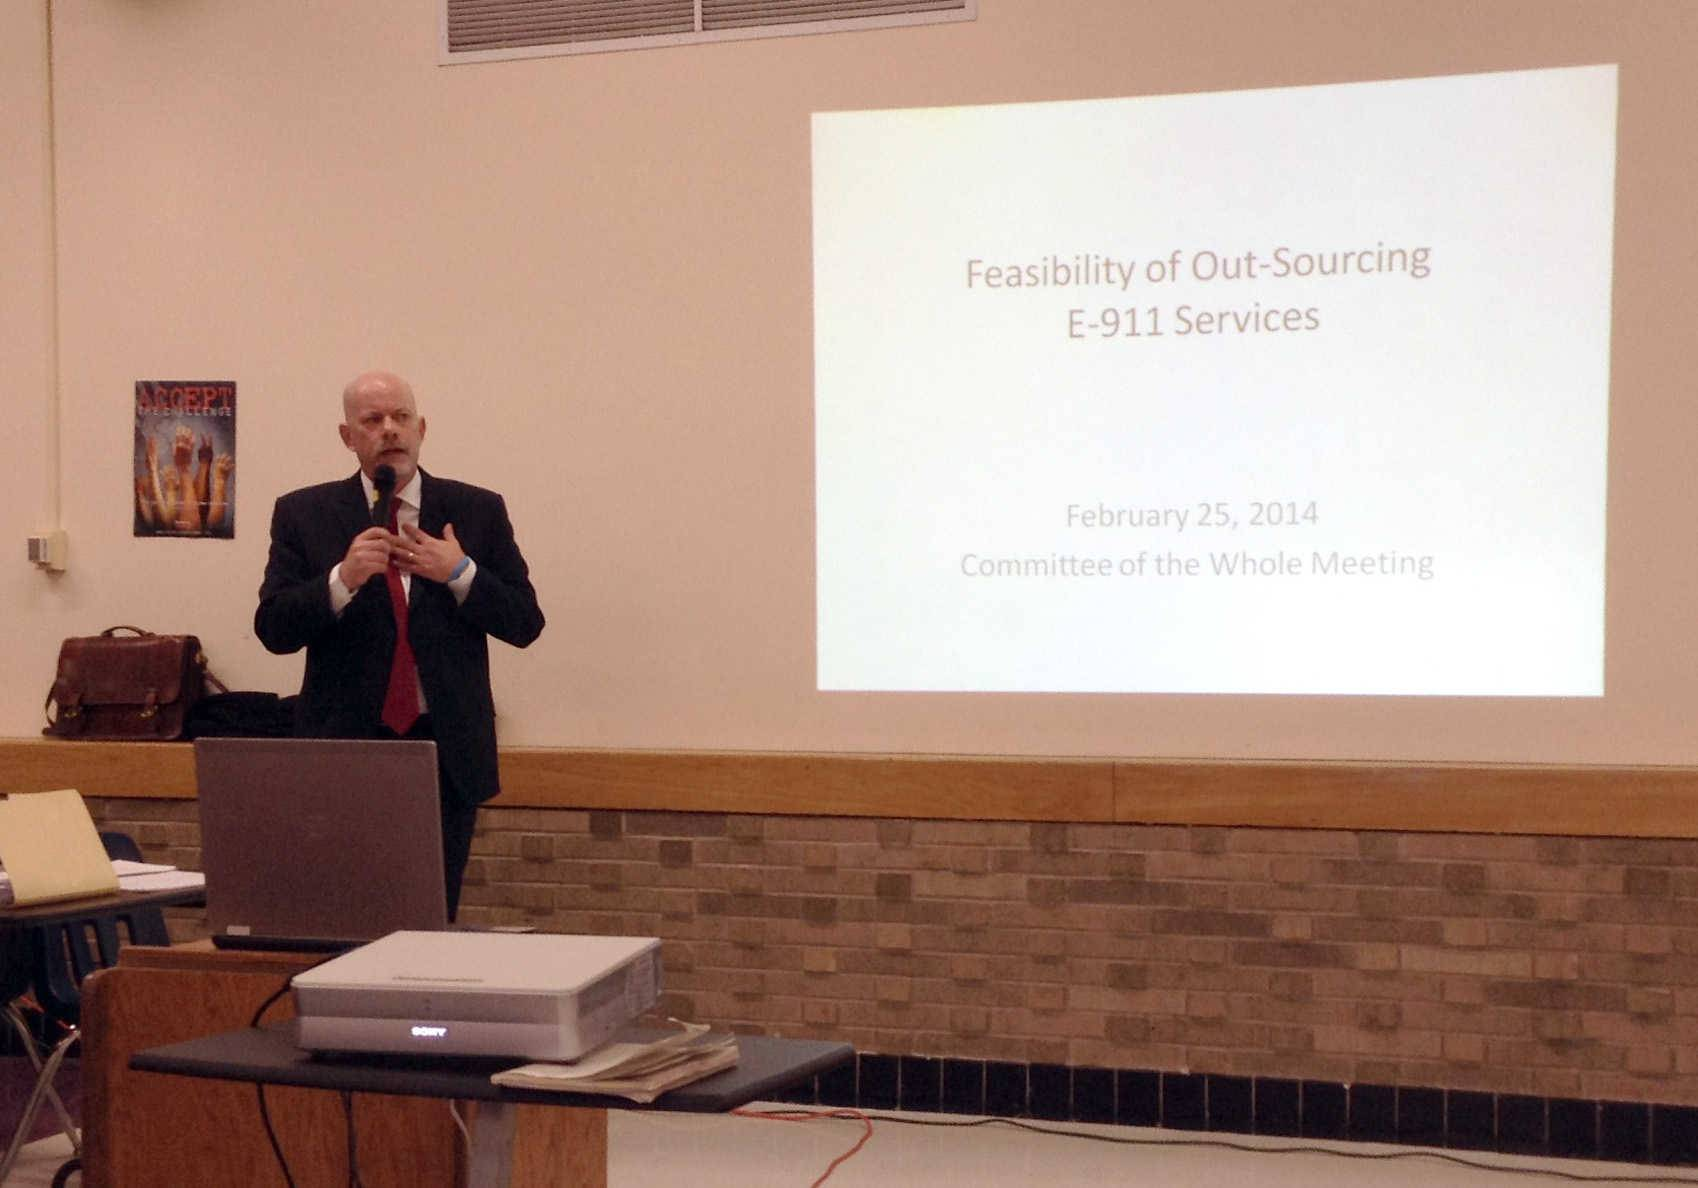 Maxeiner earns praise for outsourcing presentation in Wauconda